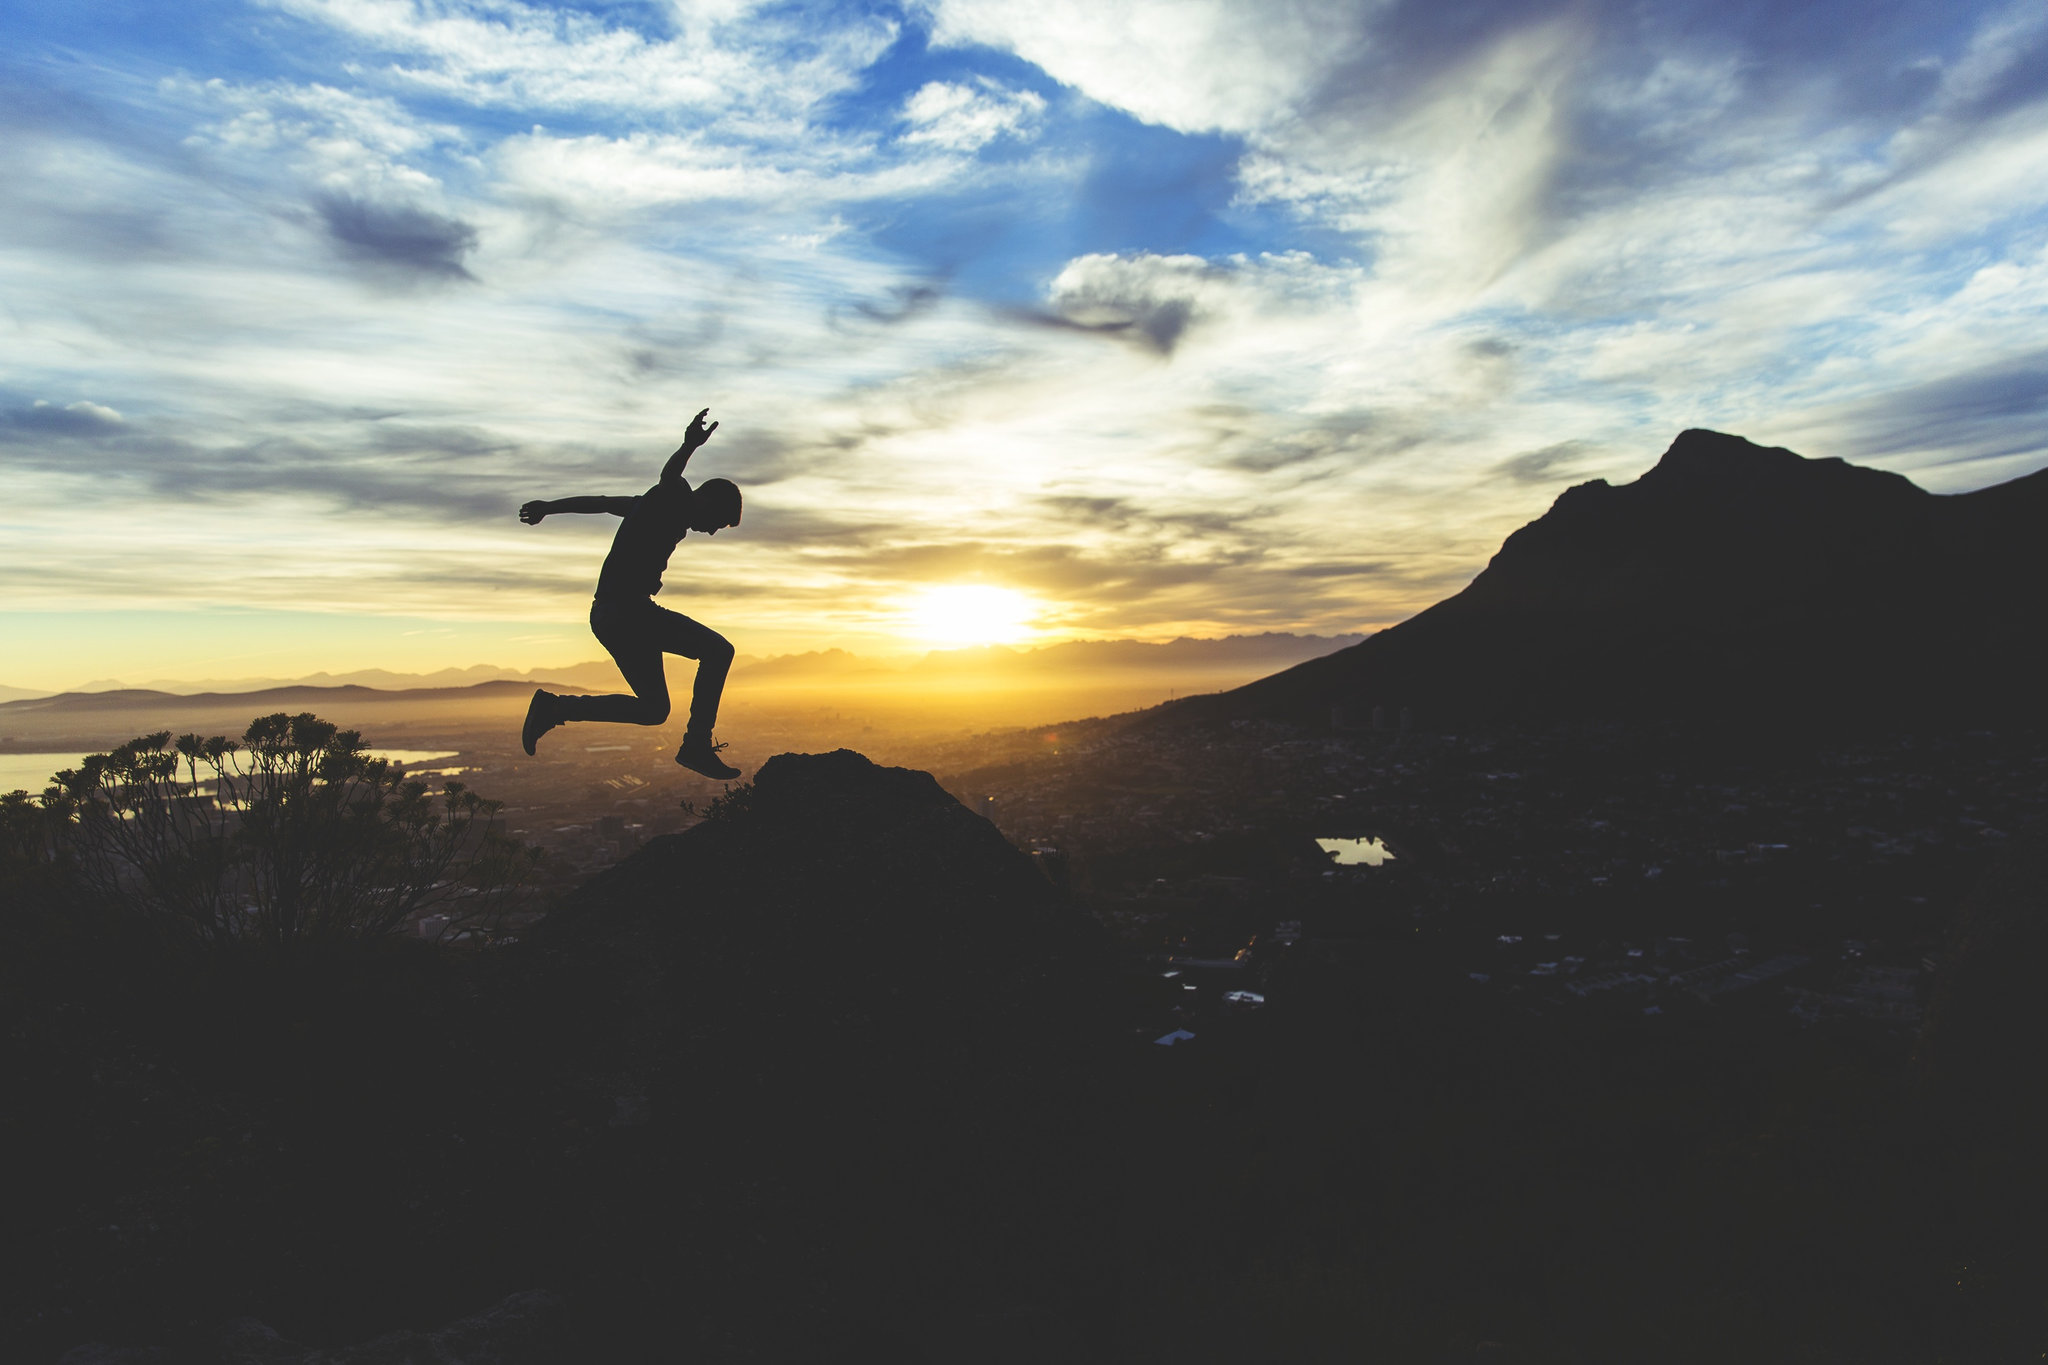 Man jumps near the peak of a mountain at sunrise.